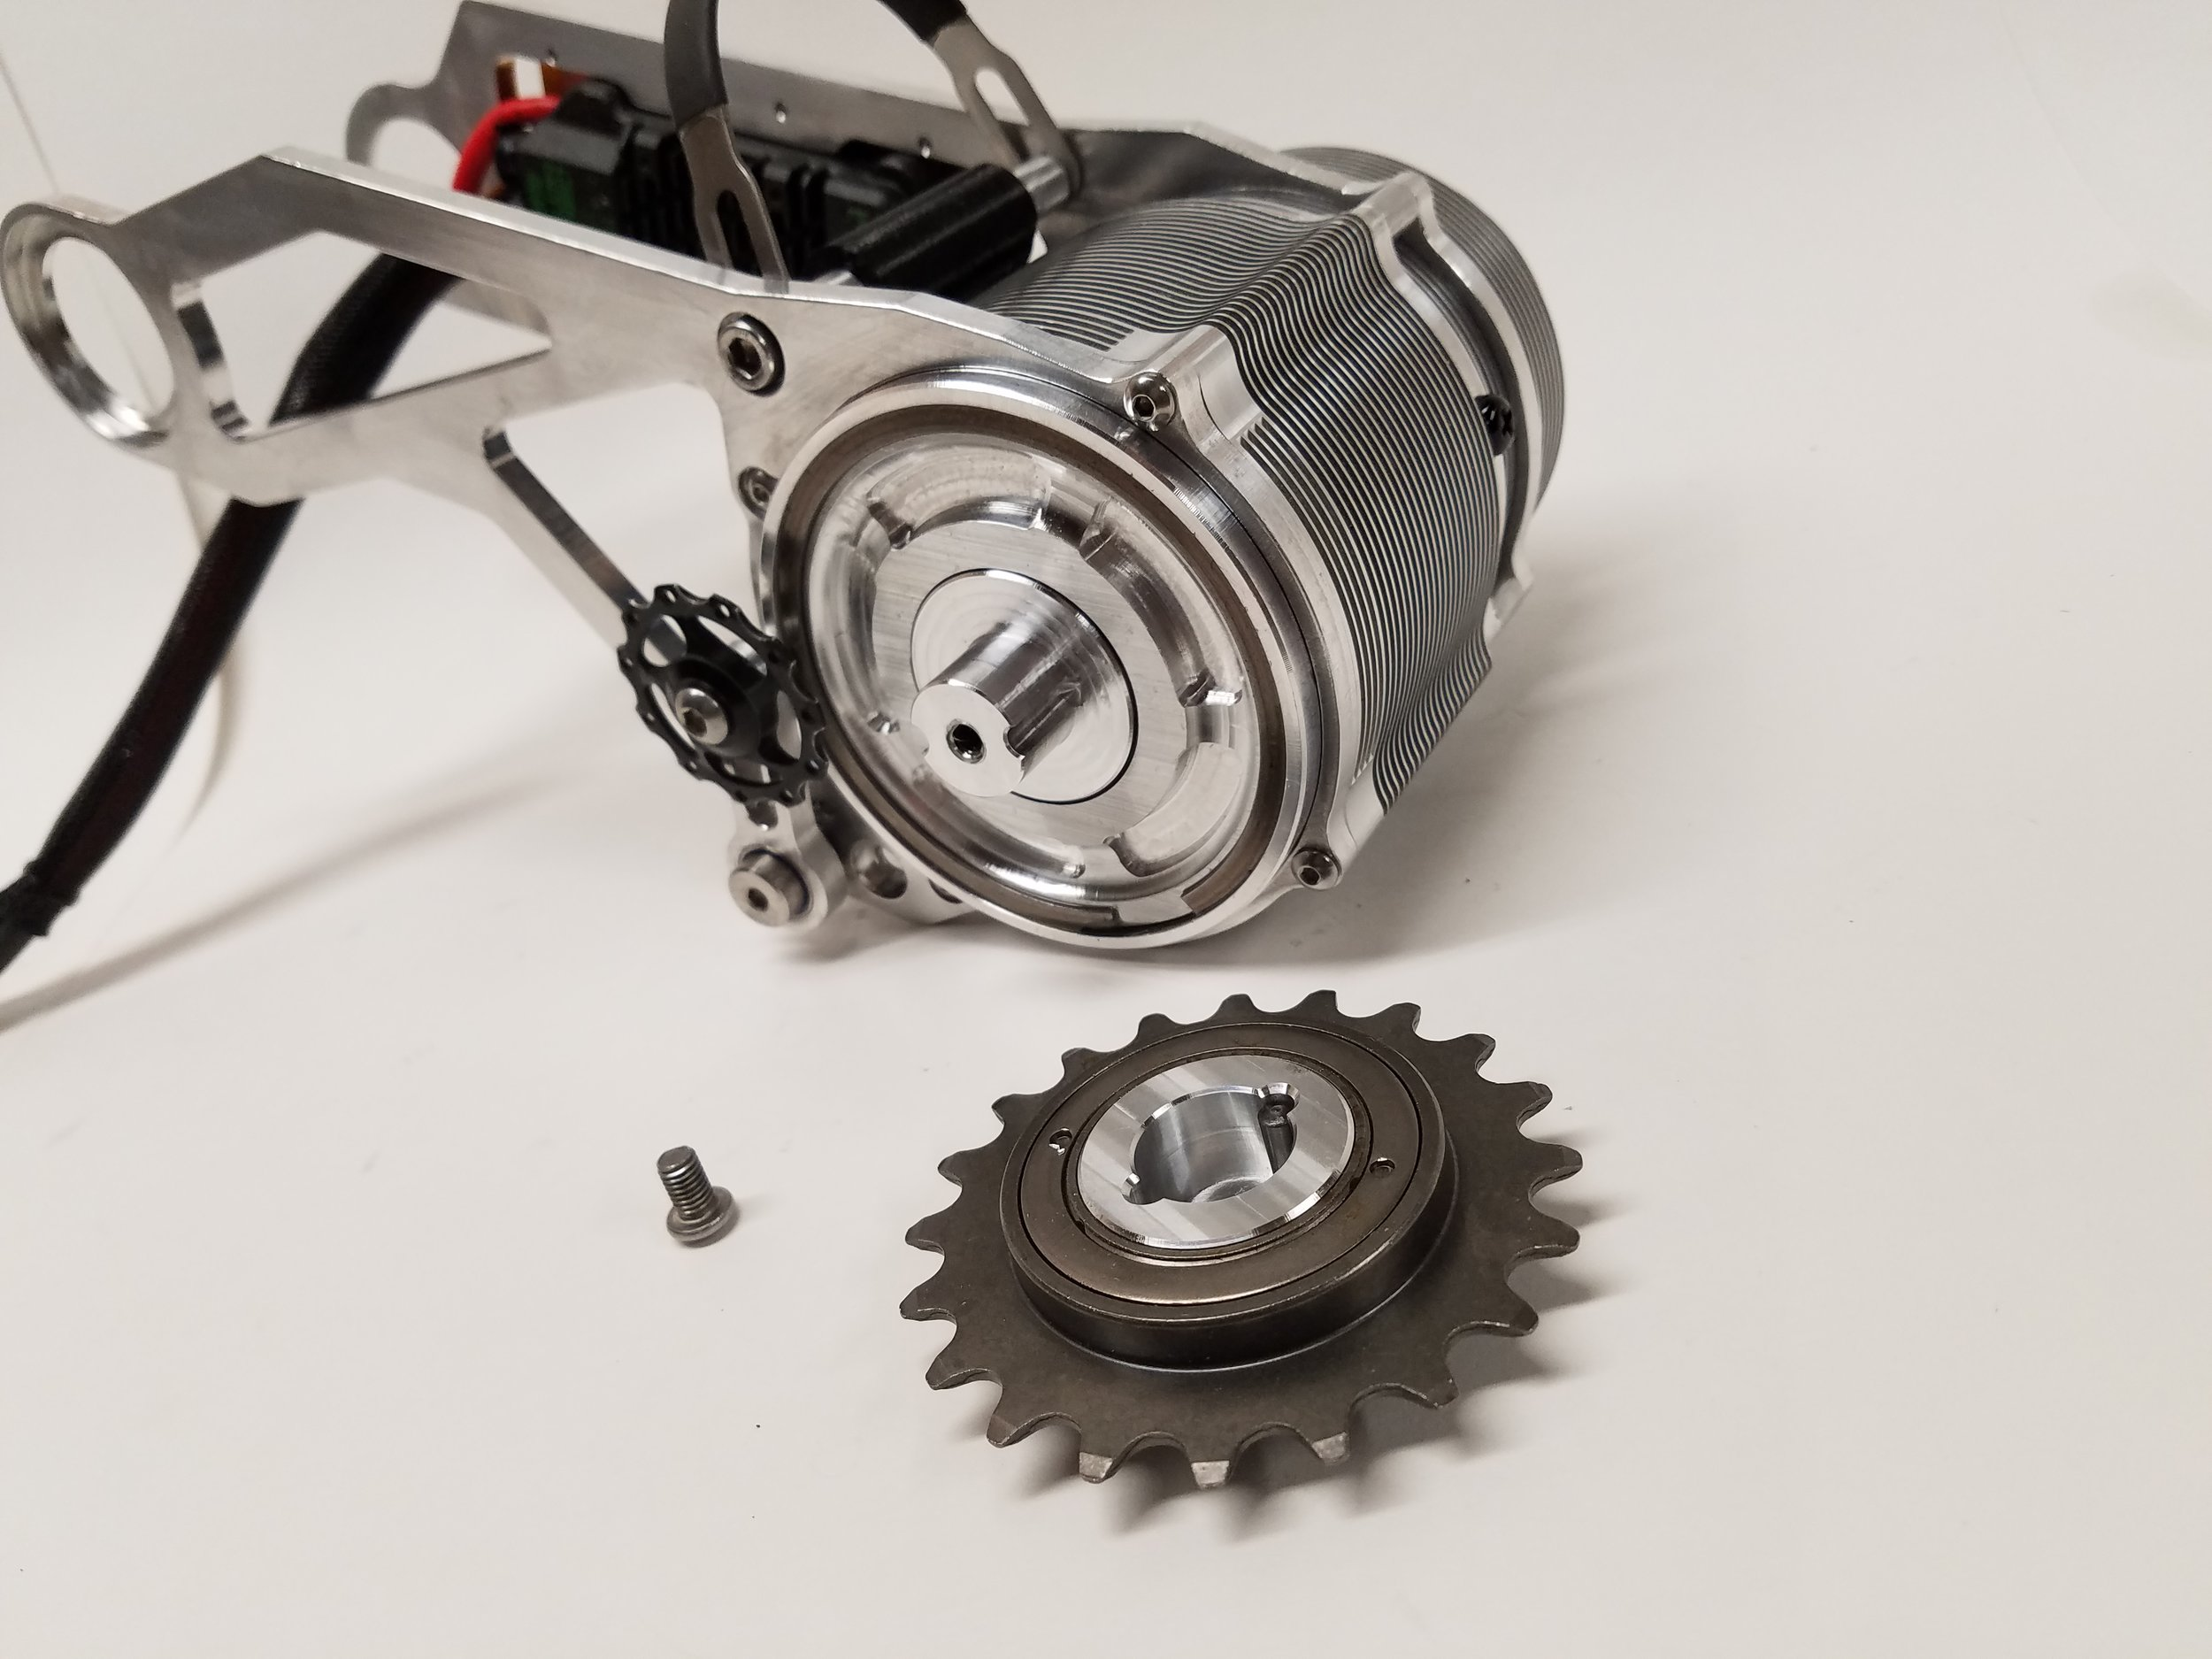 A freewheel adapter allows for easy changes of the motor freewheel to facilitate maintenance or alterations for specific setups. 14t, 16t, 18t and 20t freewheels are available.